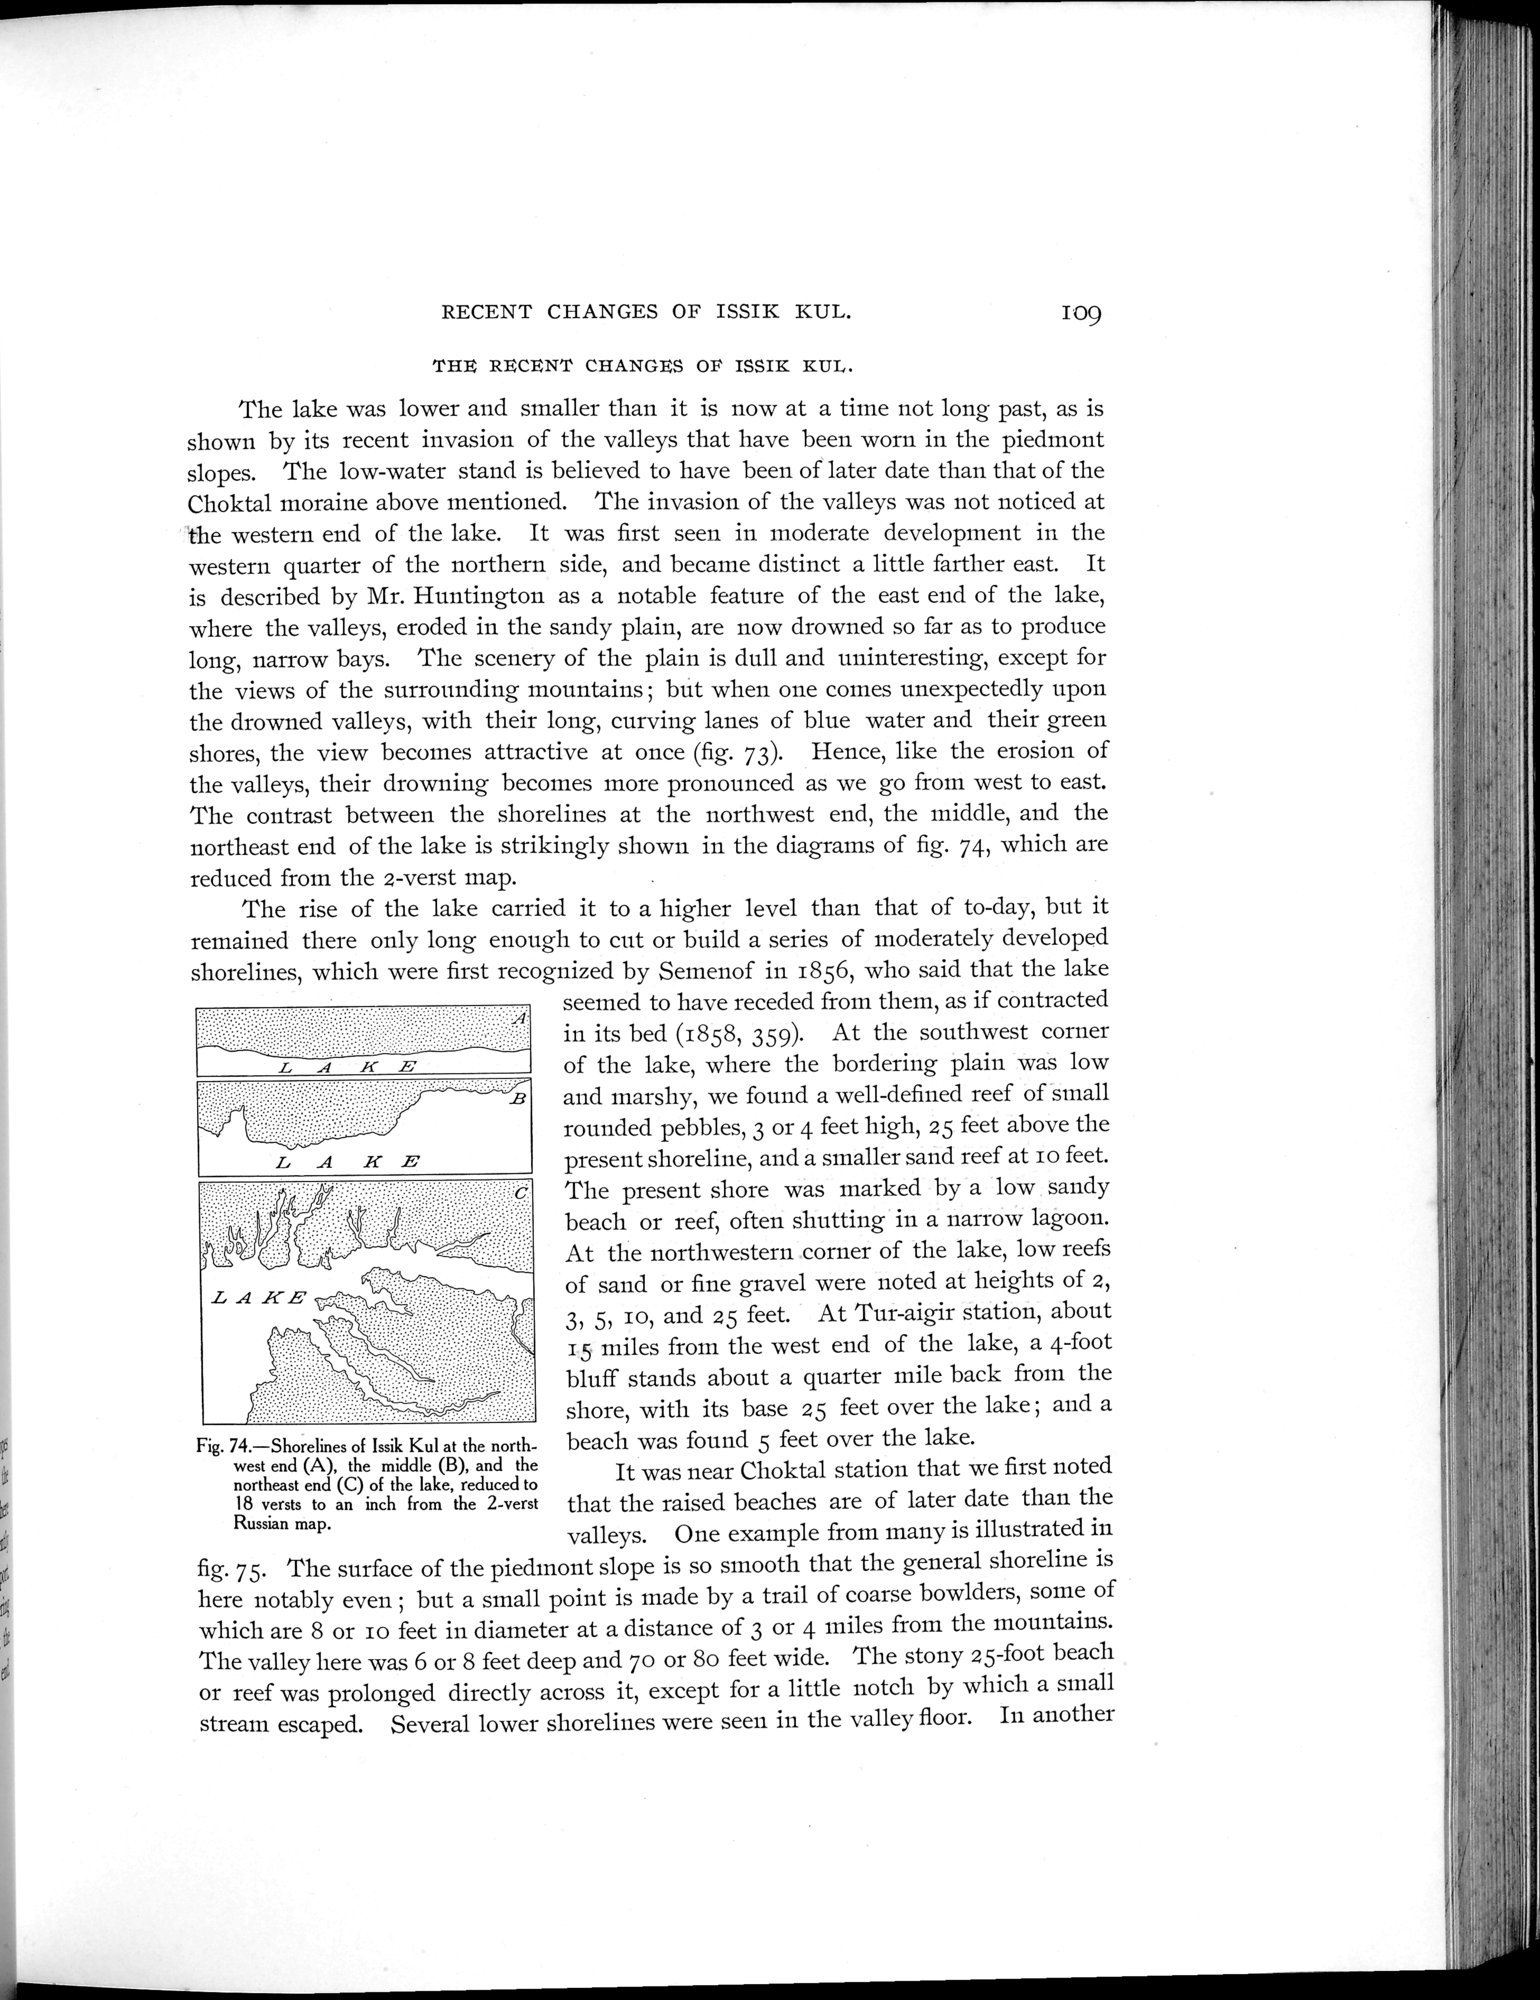 Explorations in Turkestan 1903 : vol.1 / Page 133 (Grayscale High Resolution Image)